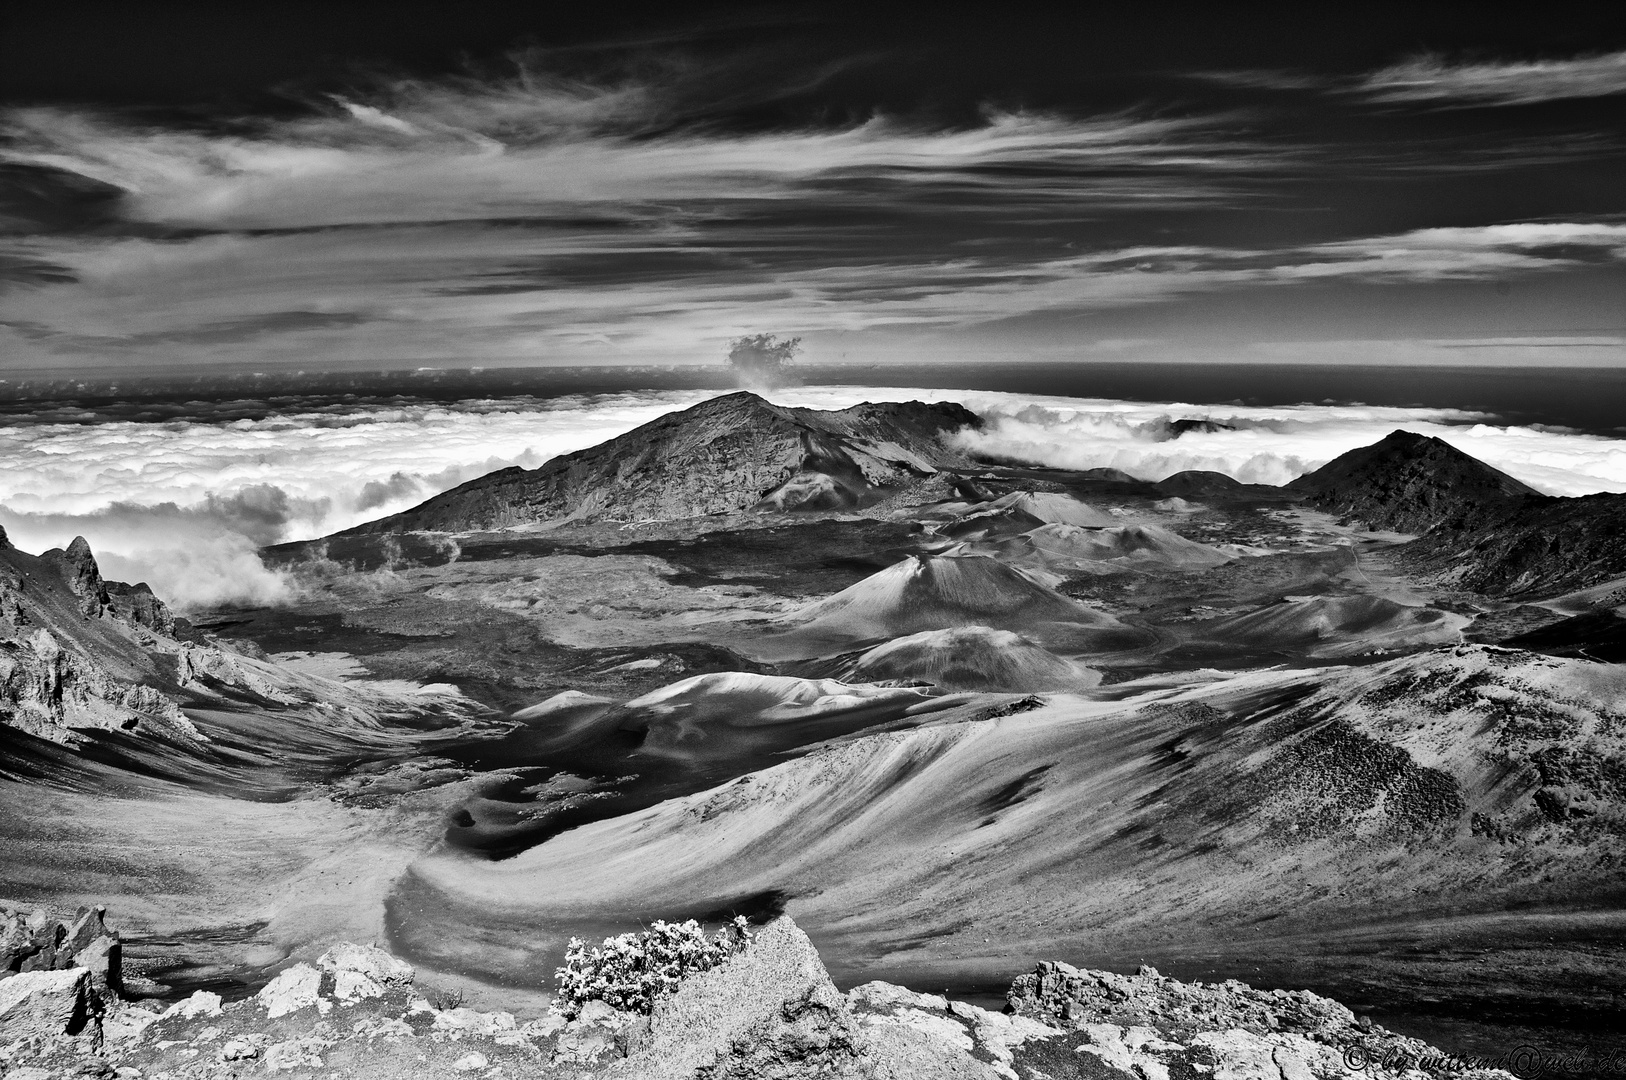 View from the top of the Haleakala Crater